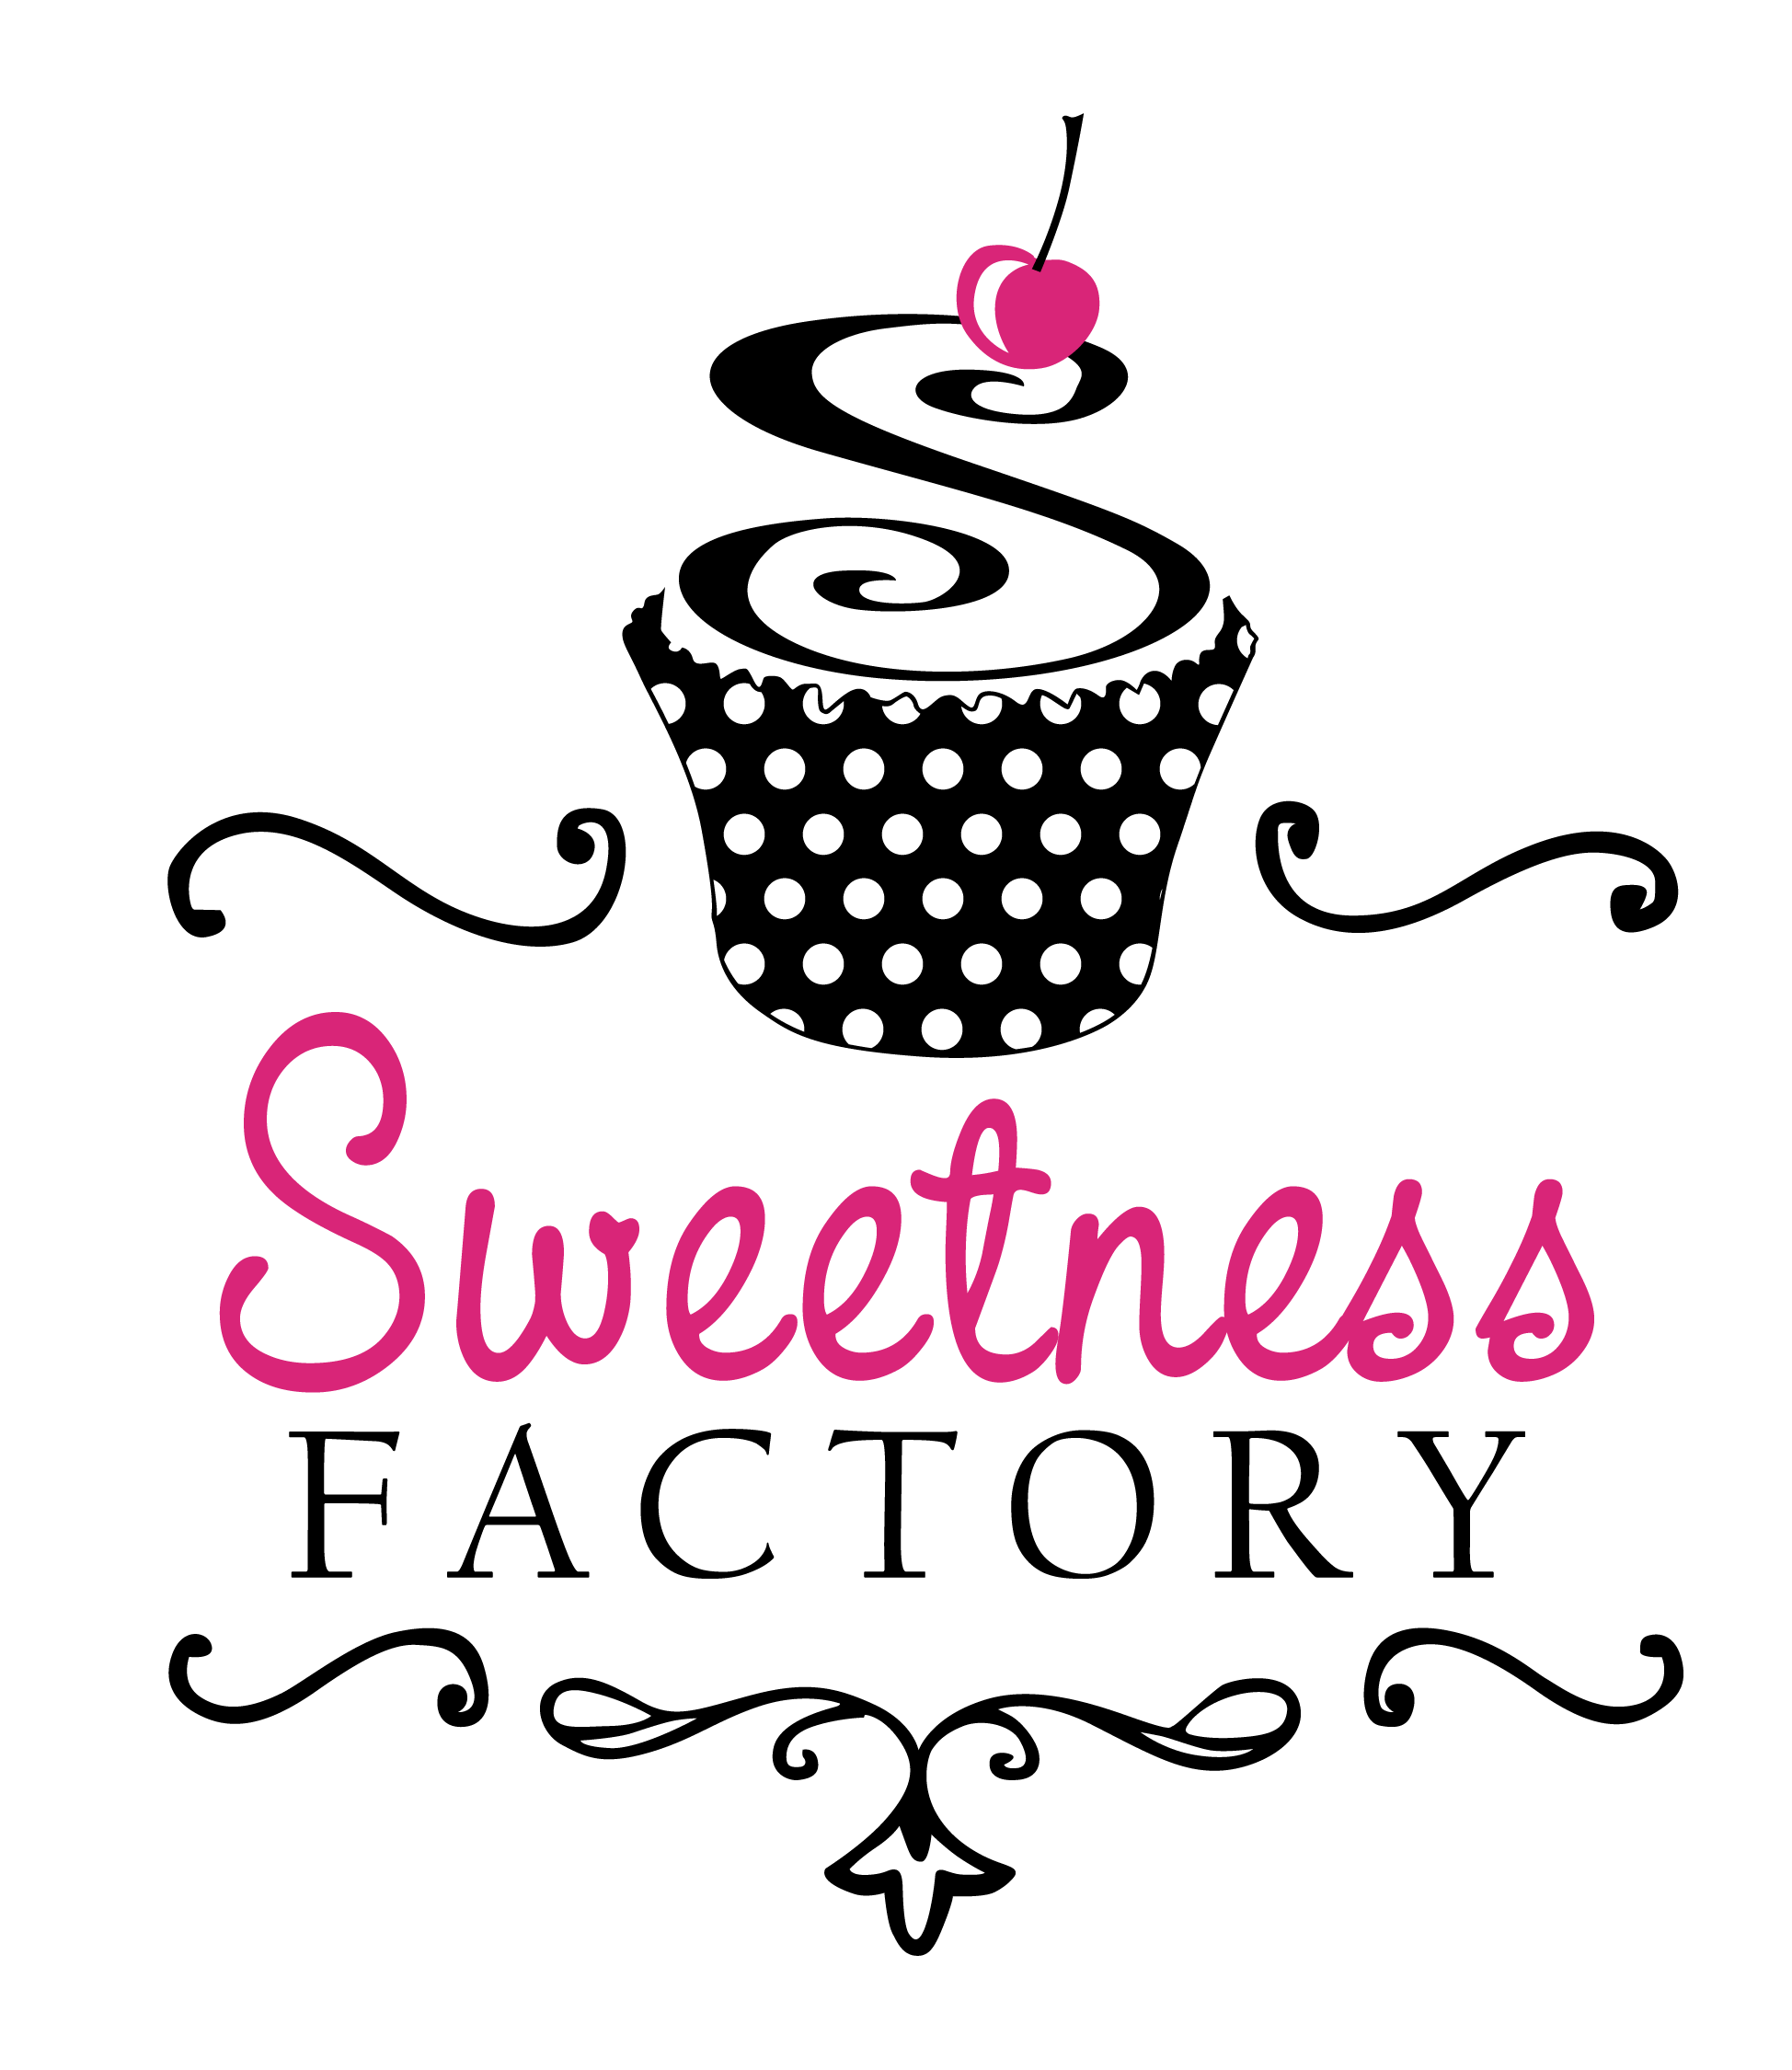 Sweetness bakers to follow. Oreo clipart factory